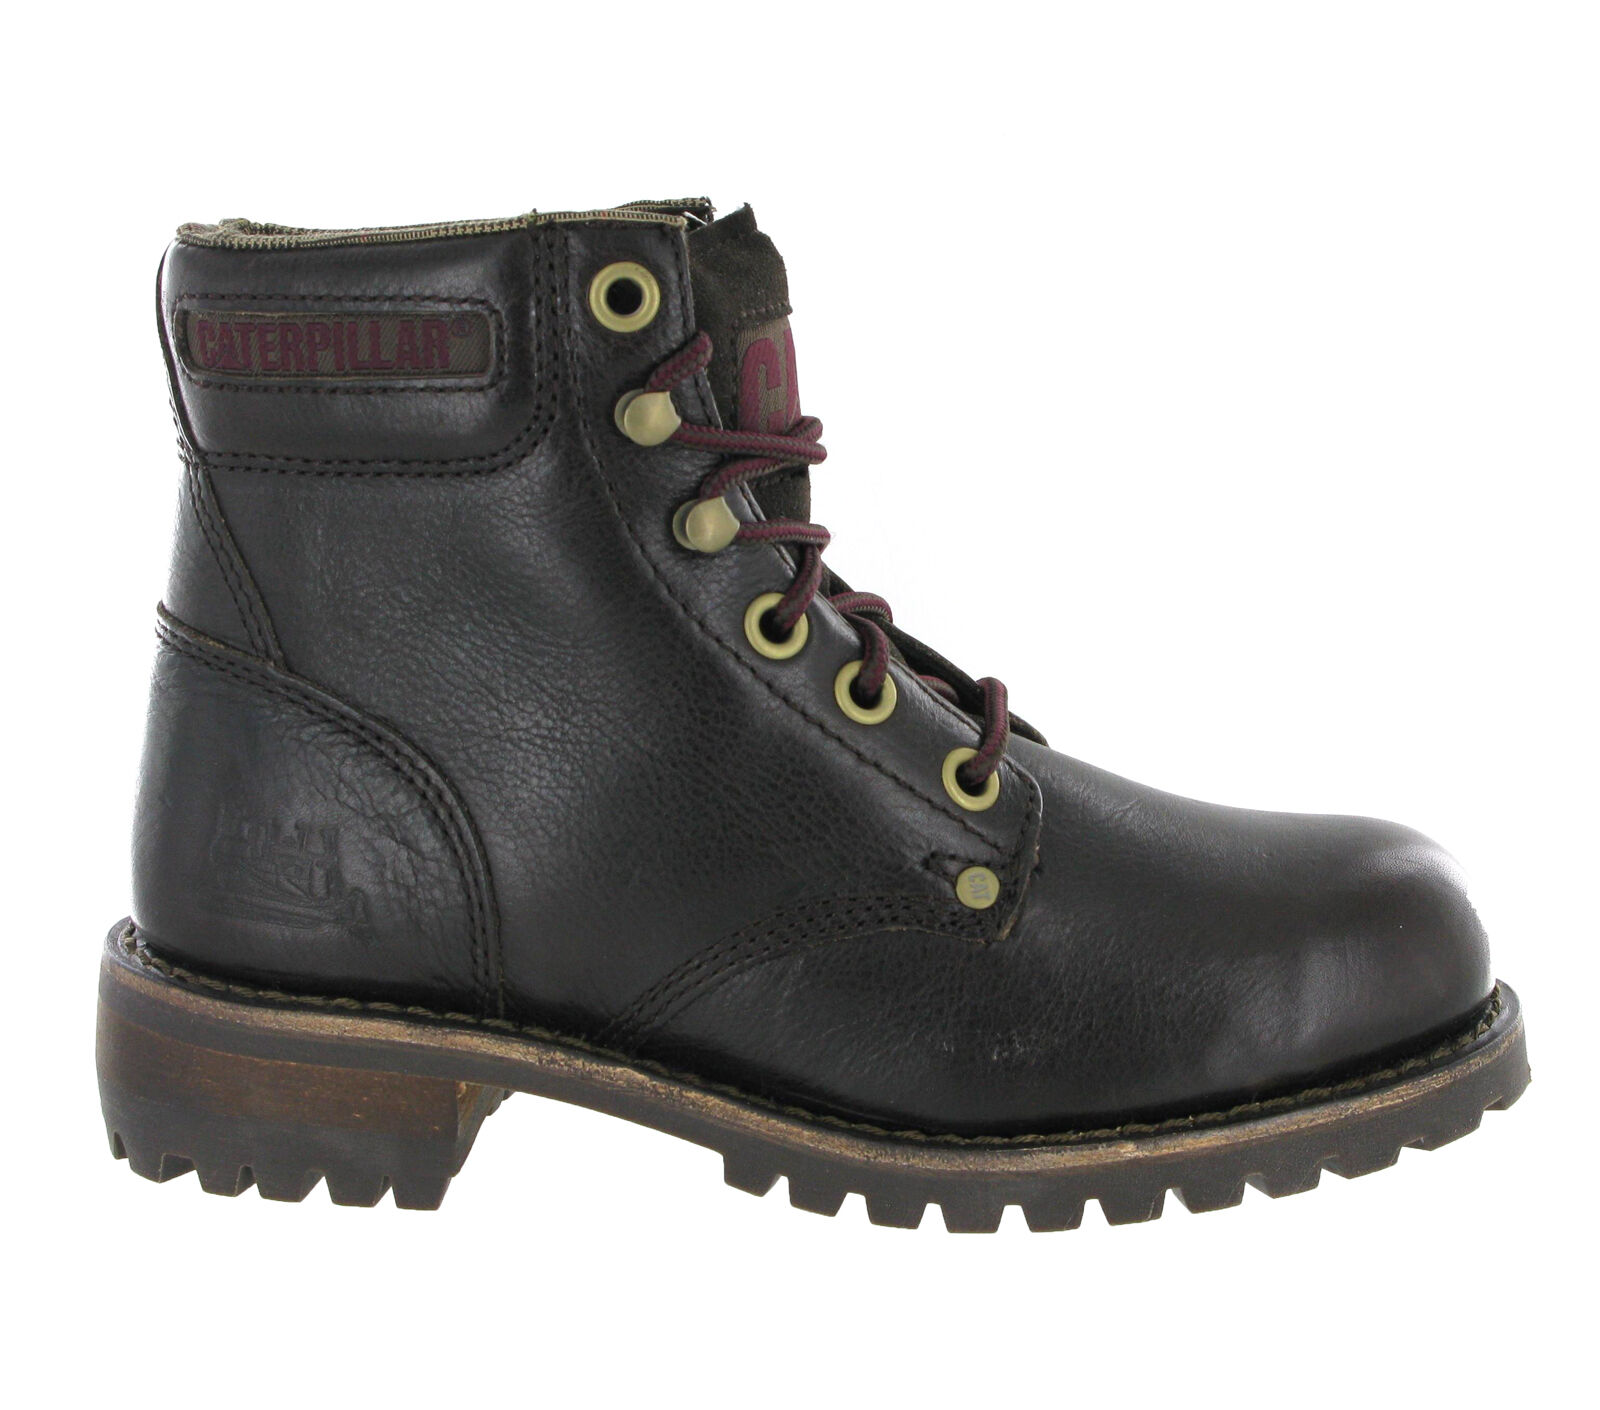 CAT Caterpillar Sequoia Leather Ankle Womens Fashion Walking Lace Up Boots UK3-8